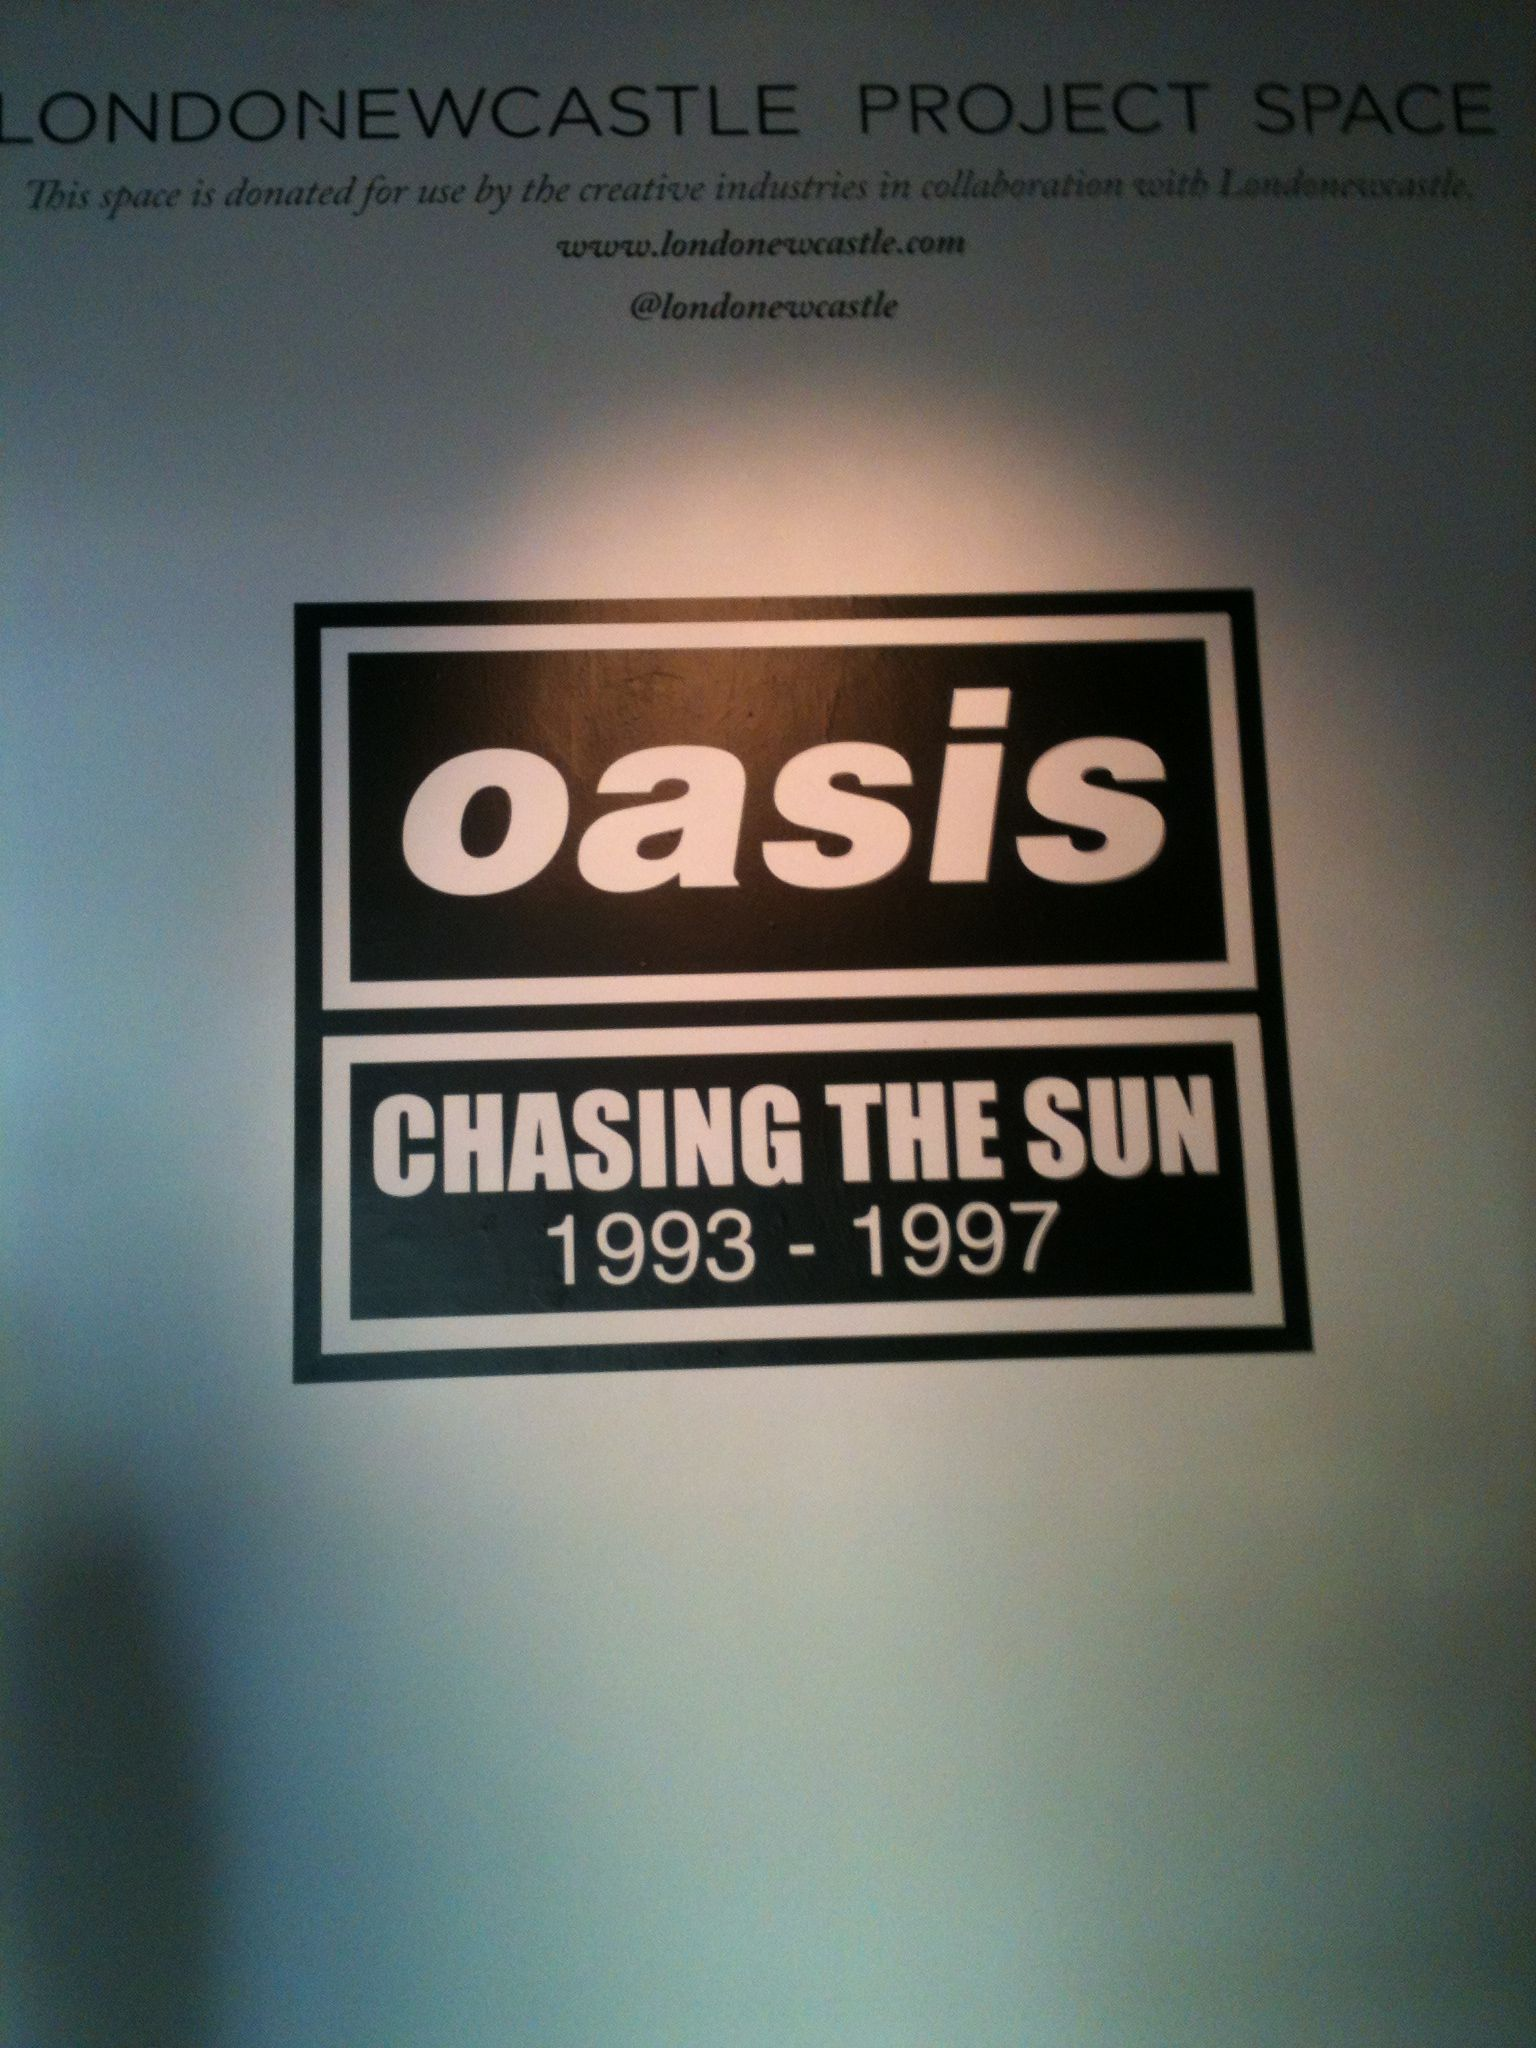 Oasis Chasing The Sun Exhibition 2014 Oasis Chasing The Sun Creative Industries